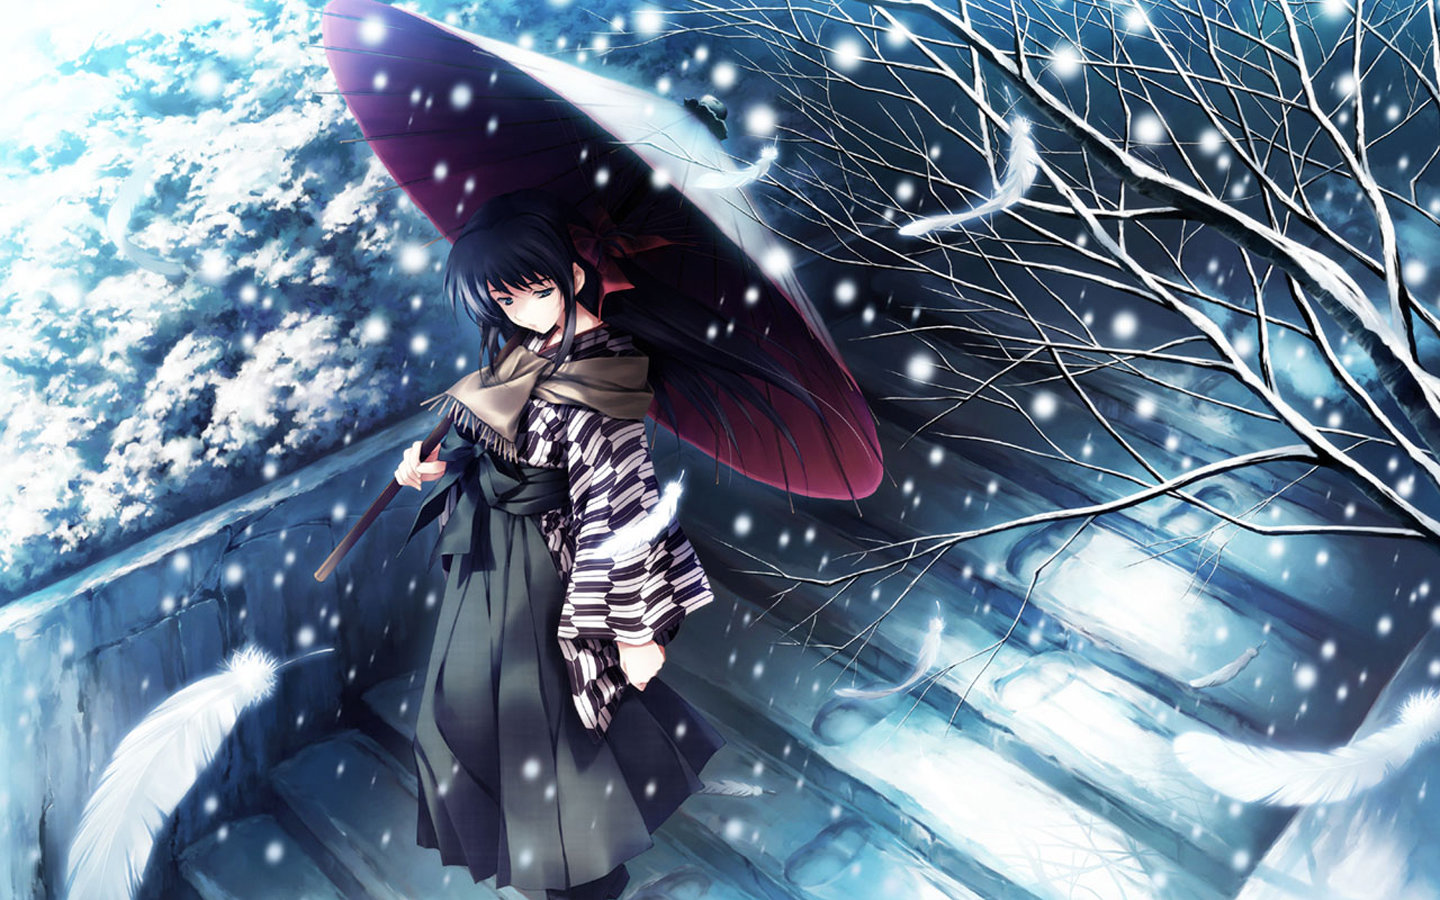 Awesome Cool Anime Free Wallpaper Id 365151 For Hd 1440x900 Desktop